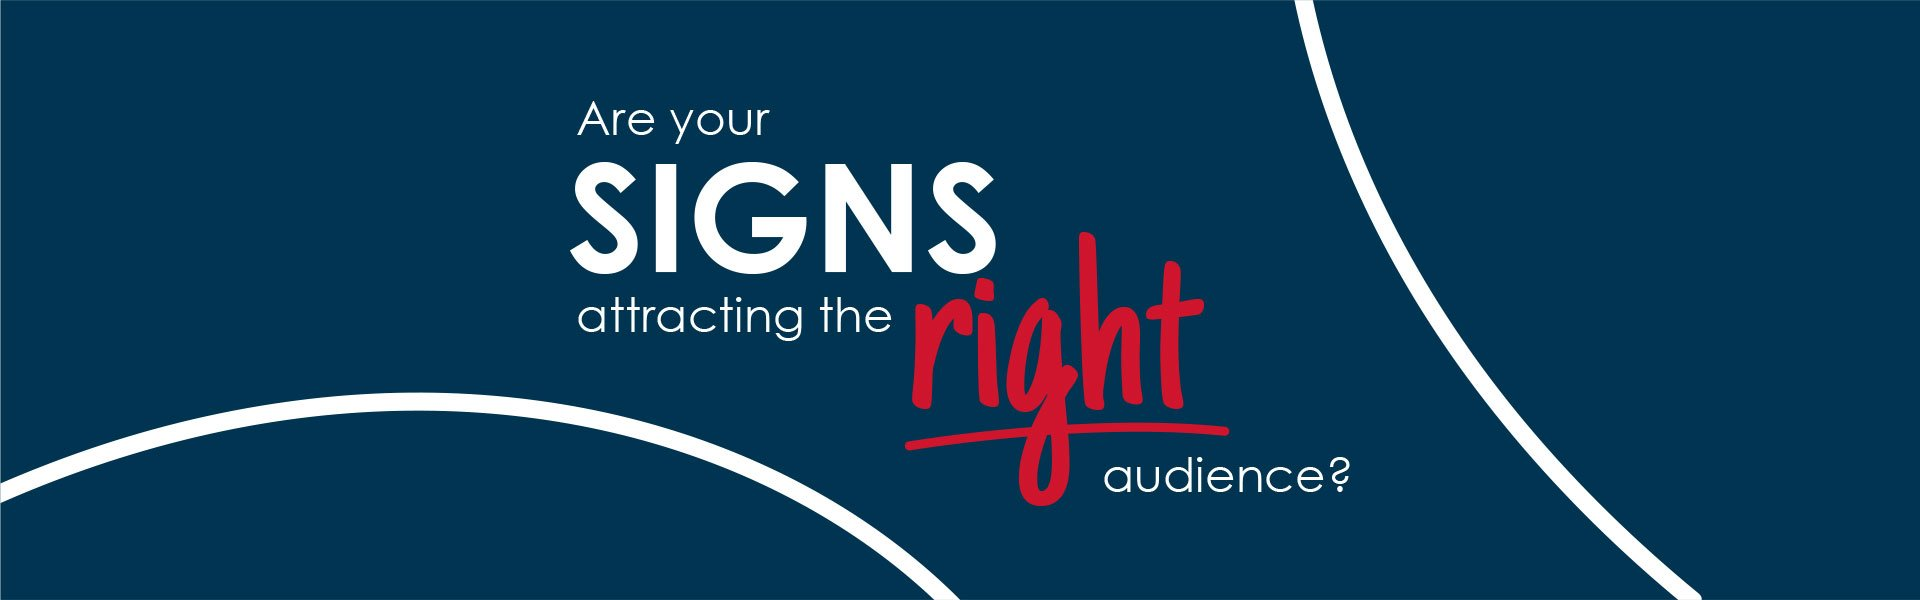 Are your signs attracting the right audience